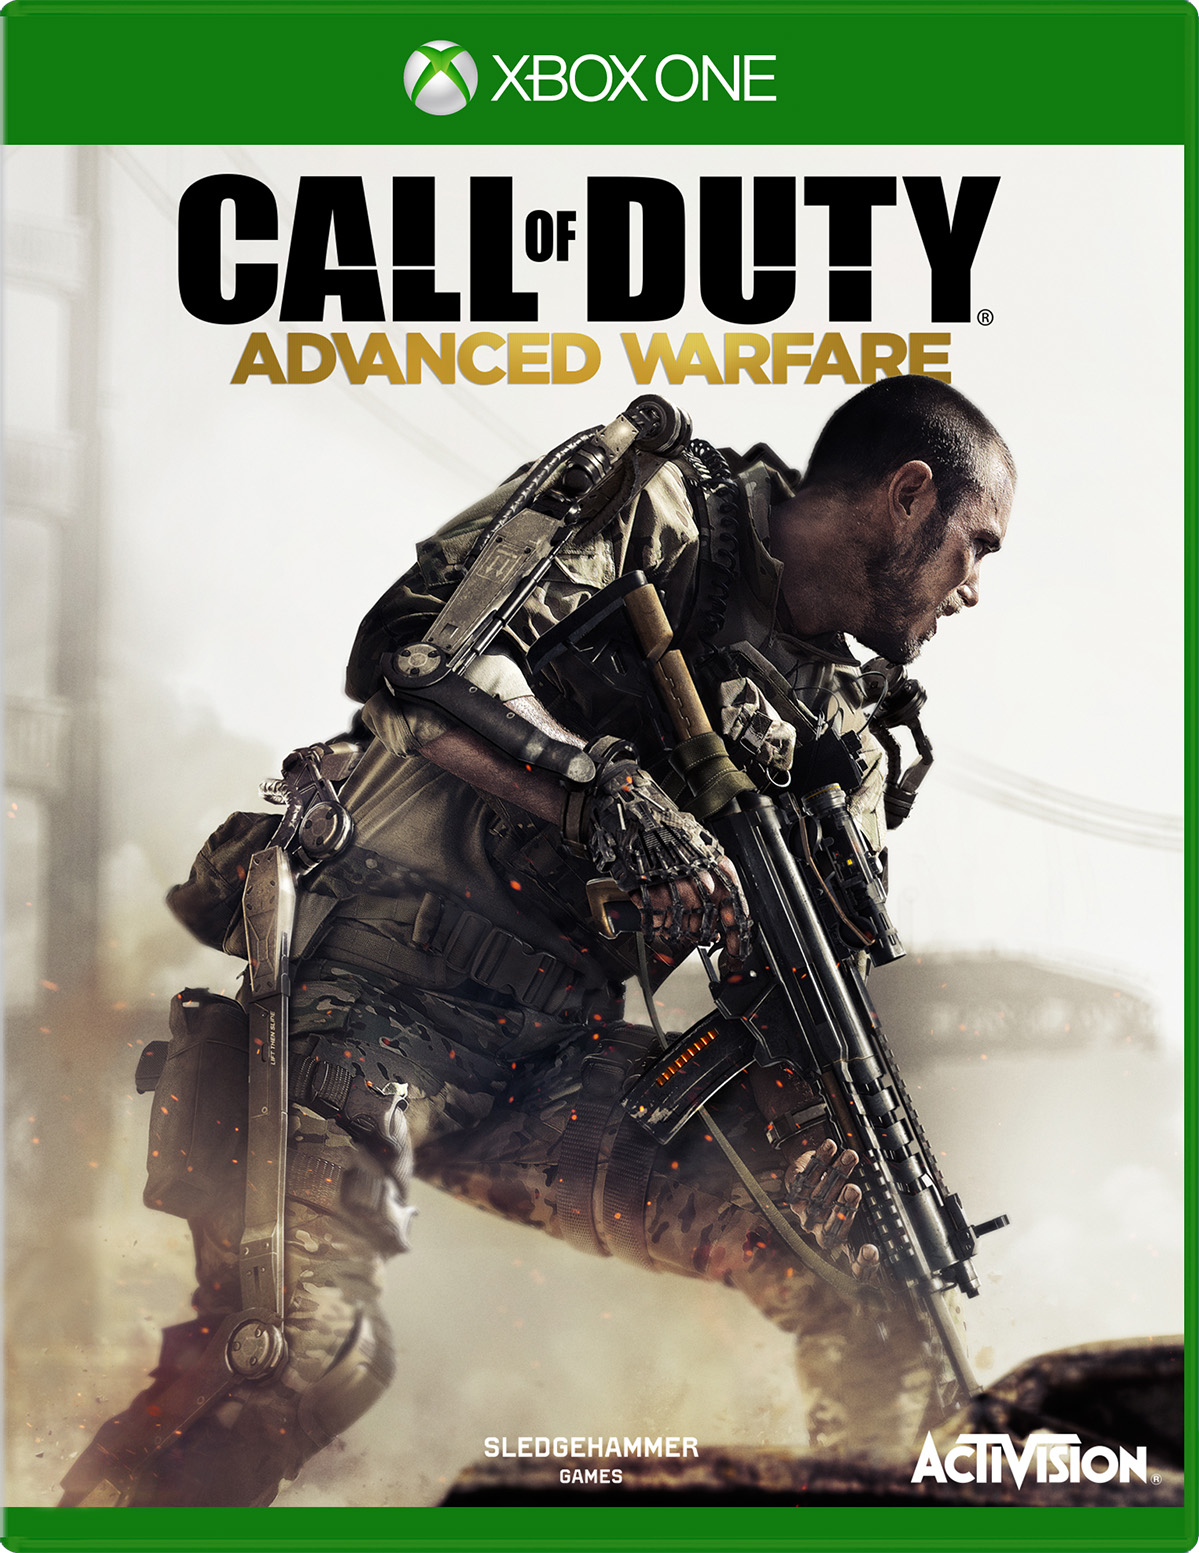 Call of Duty: Advanced Warfare for Xbox One (English)